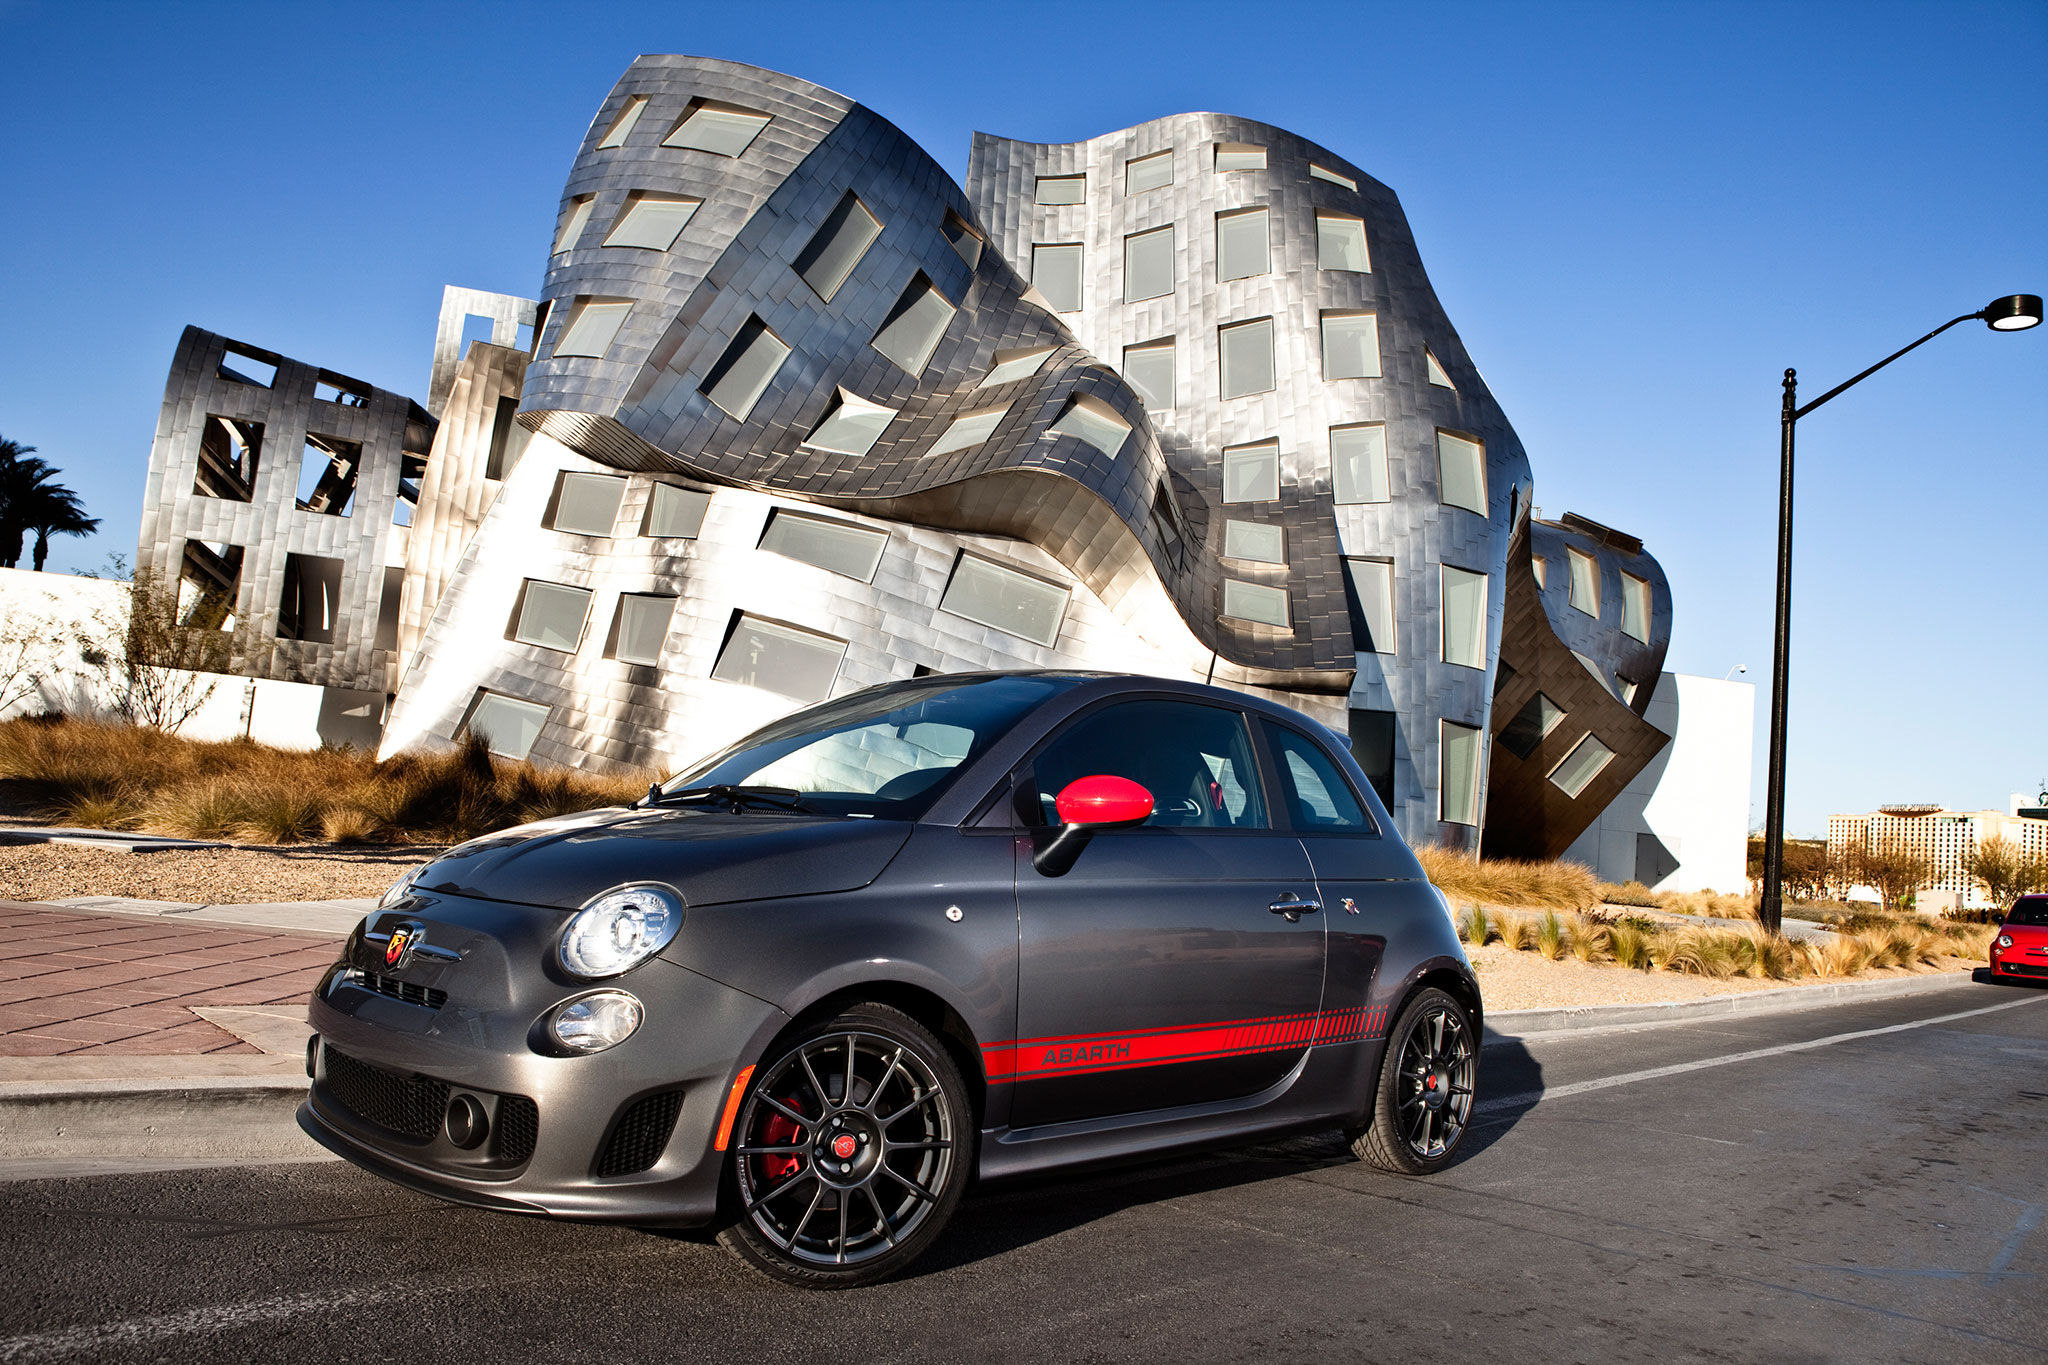 2014 Fiat 500 Abarth Drivers Side View1